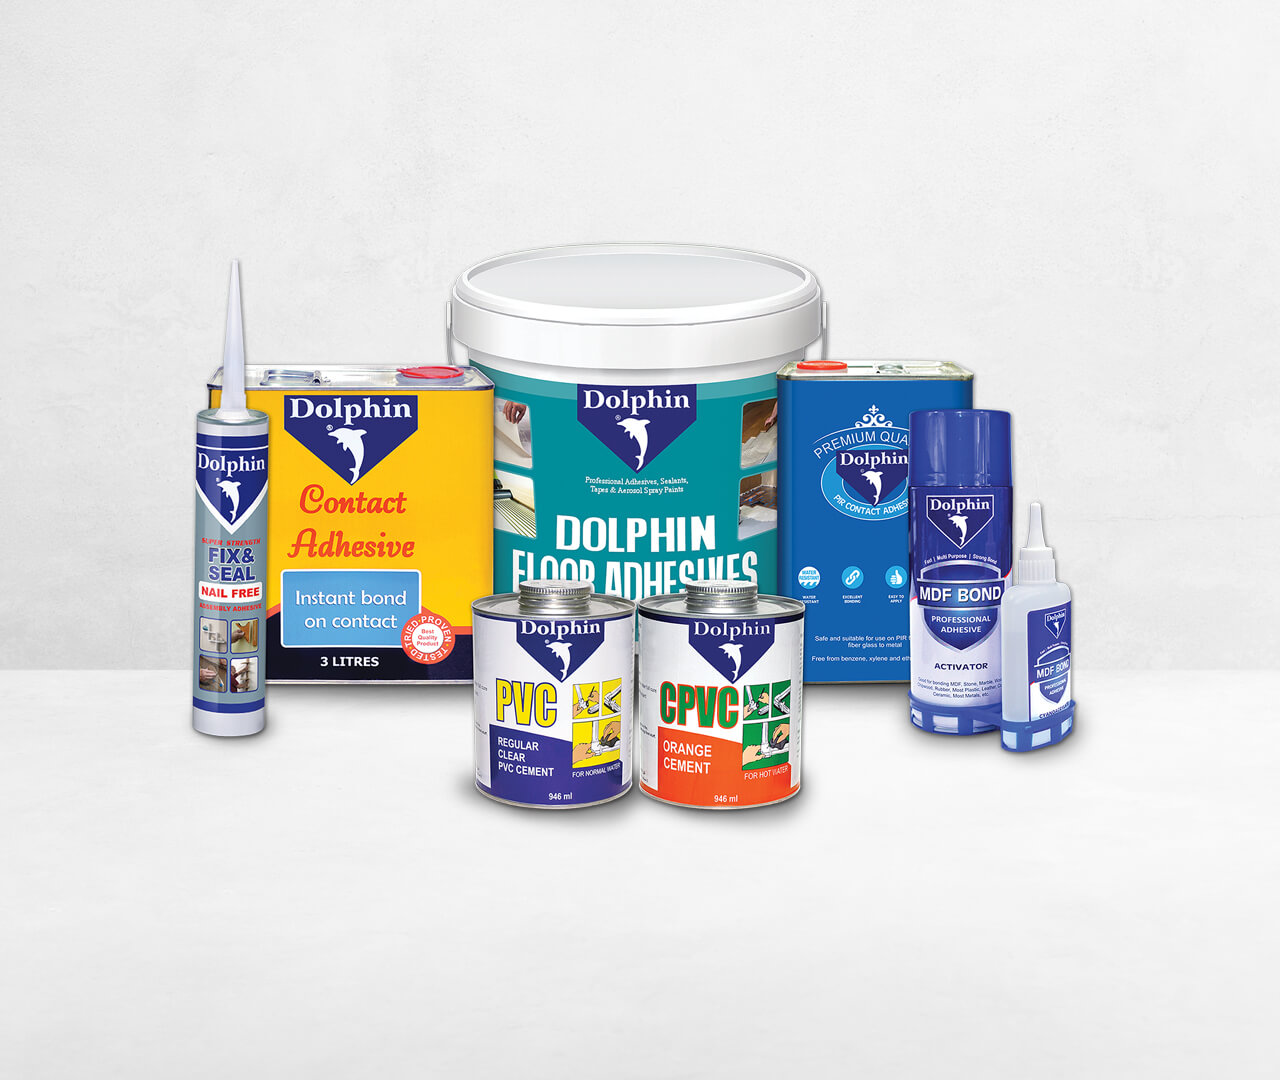 Dolphin Adhesive products